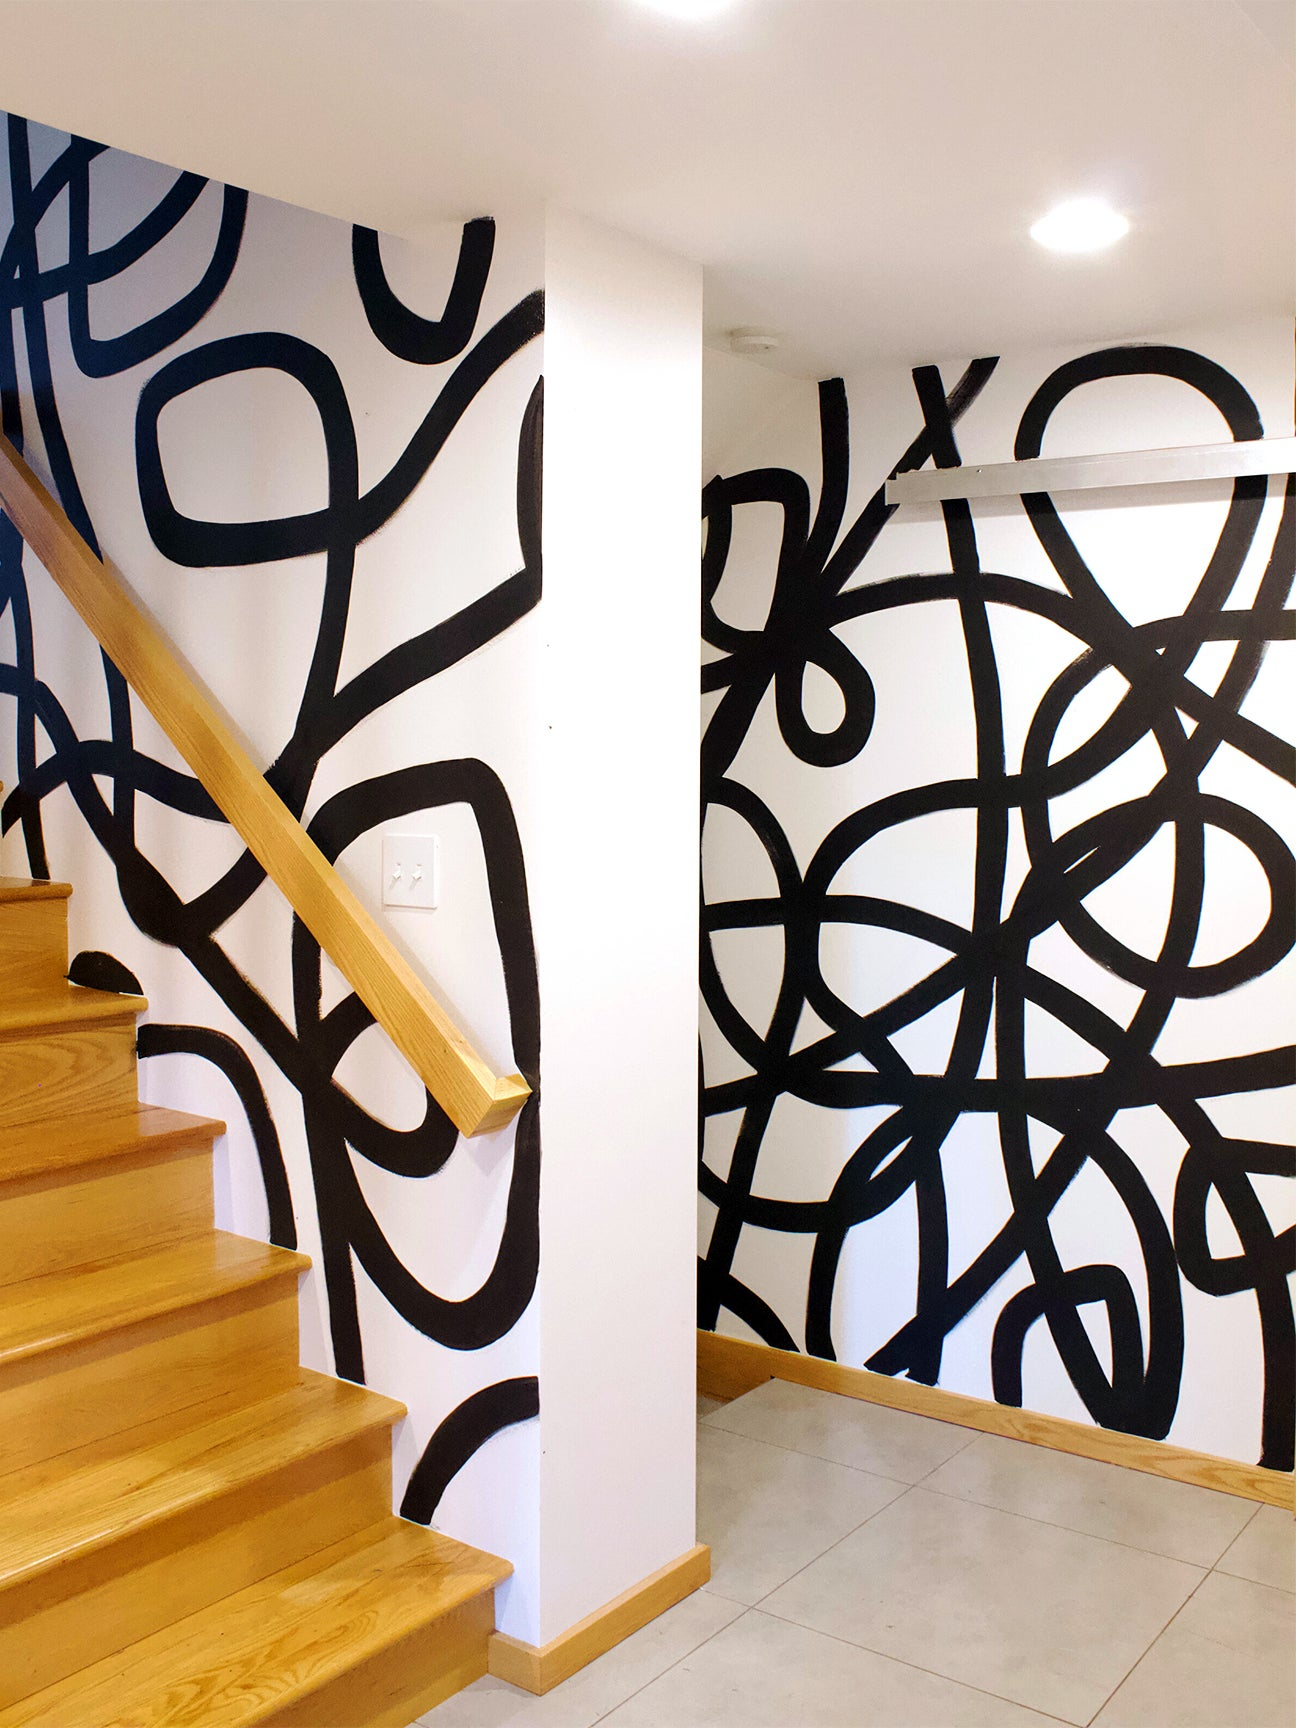 10 Wall Painting Design Ideas For The Free Spirit